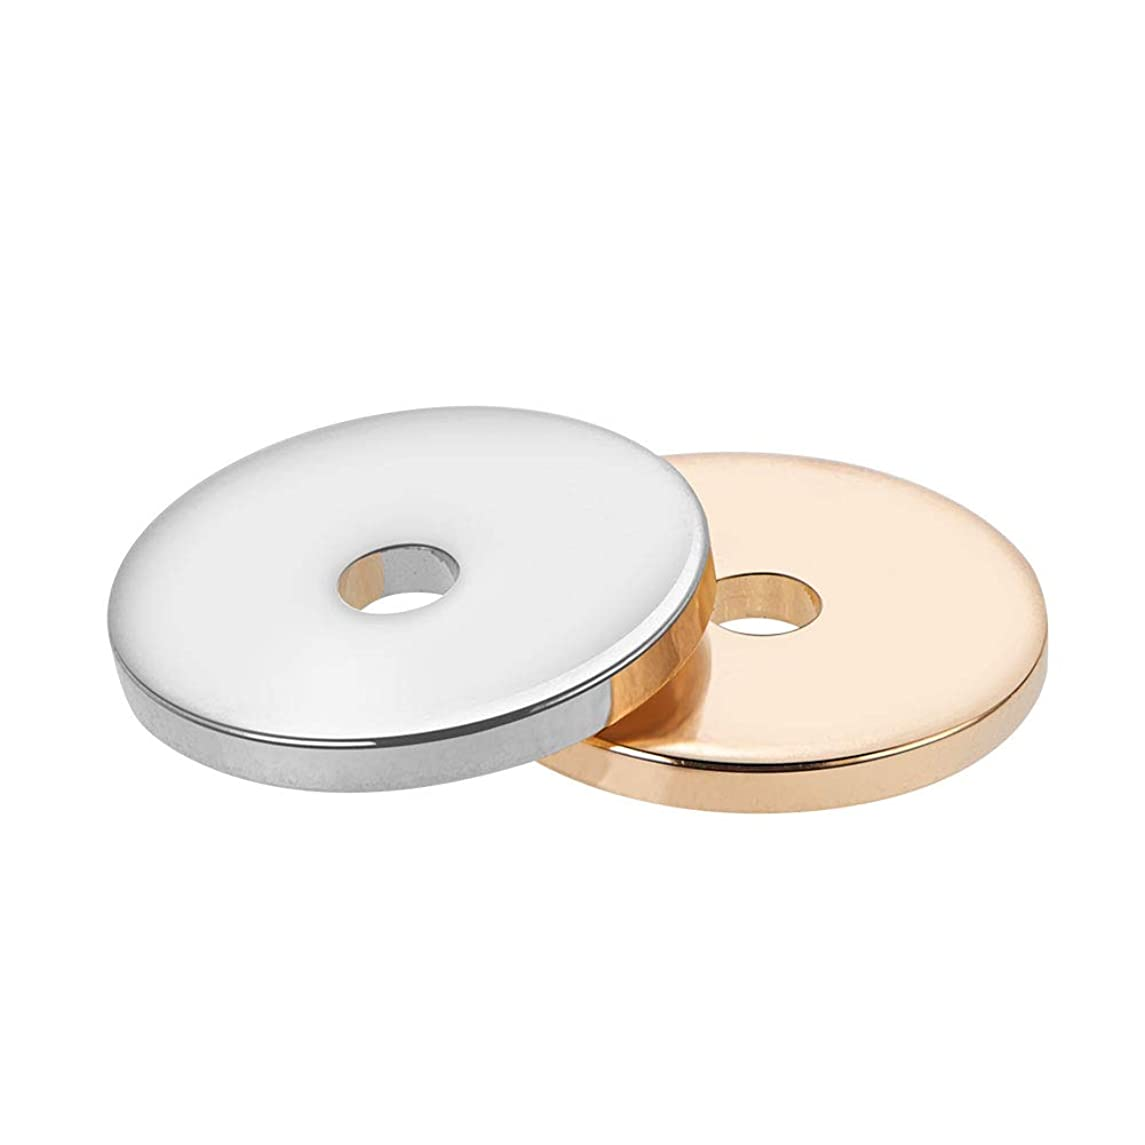 BENECREAT 40PCS 10mm 18K Gold Plated & Platinum Plated Bead Spacers Flat Round Bead Spacers Loose Spacer Charms for Jewelry Making Crafts